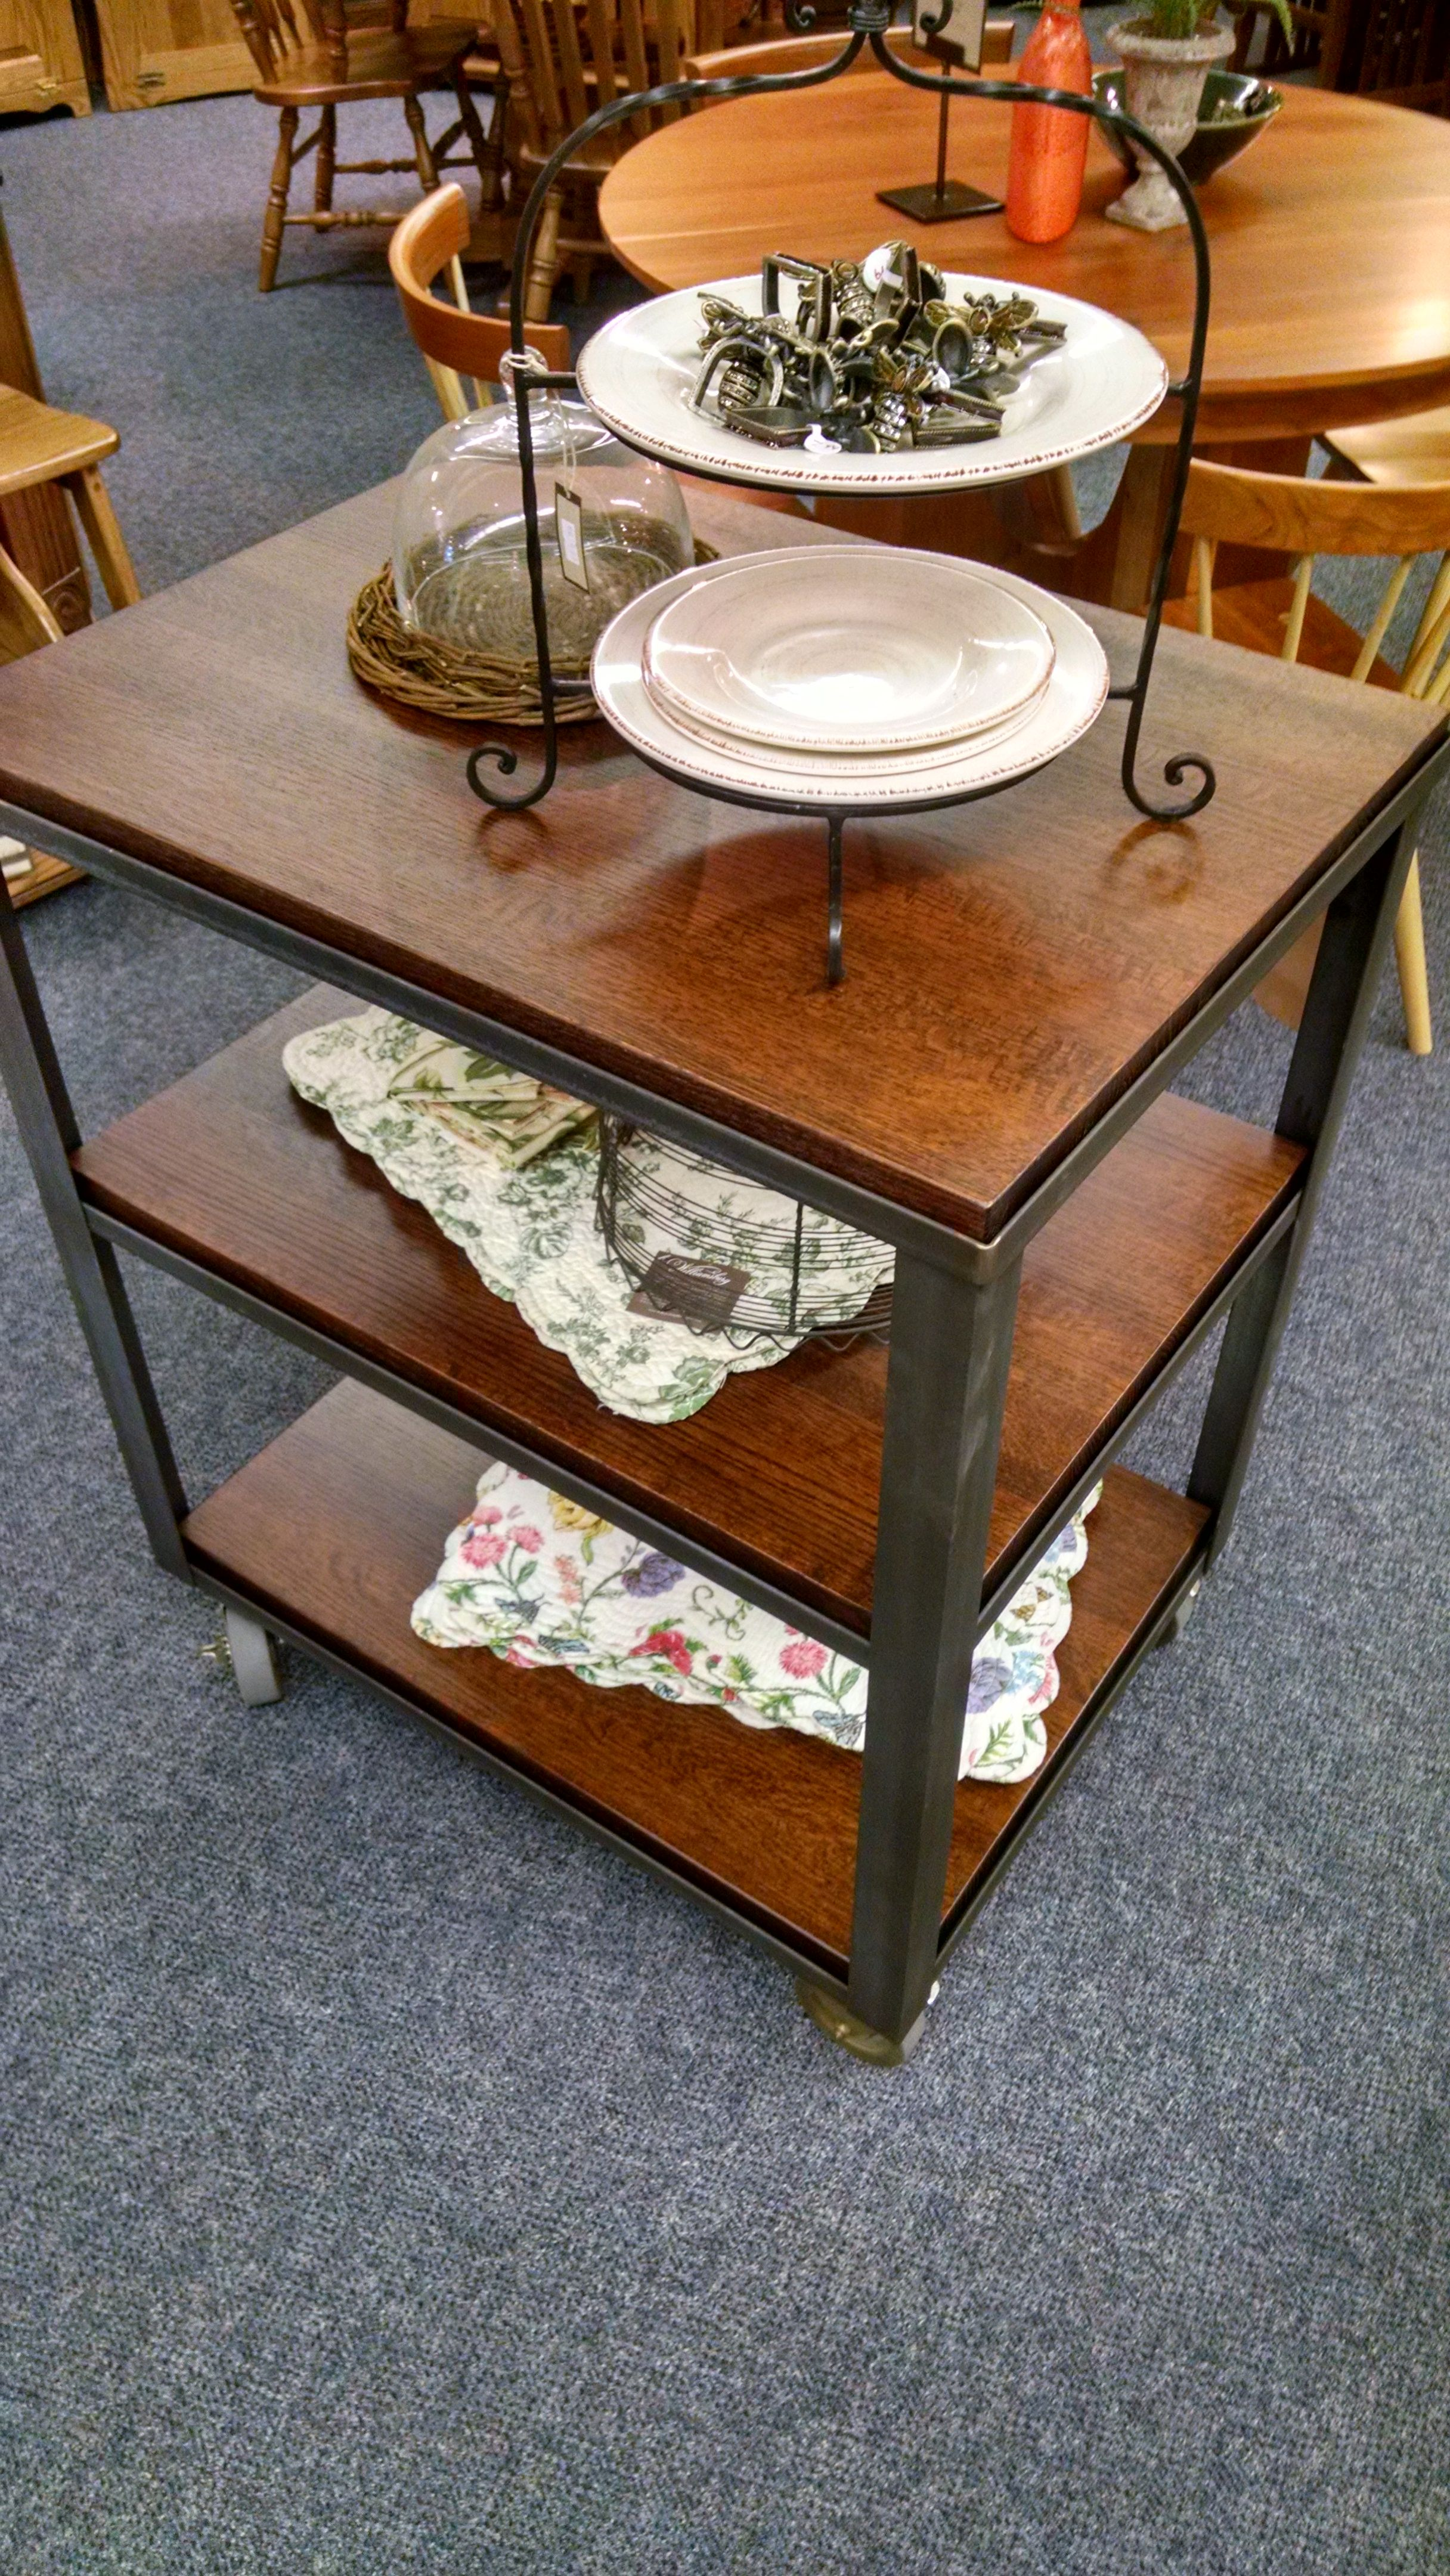 Hand Crafted Butcher Block Island Table With Casters By